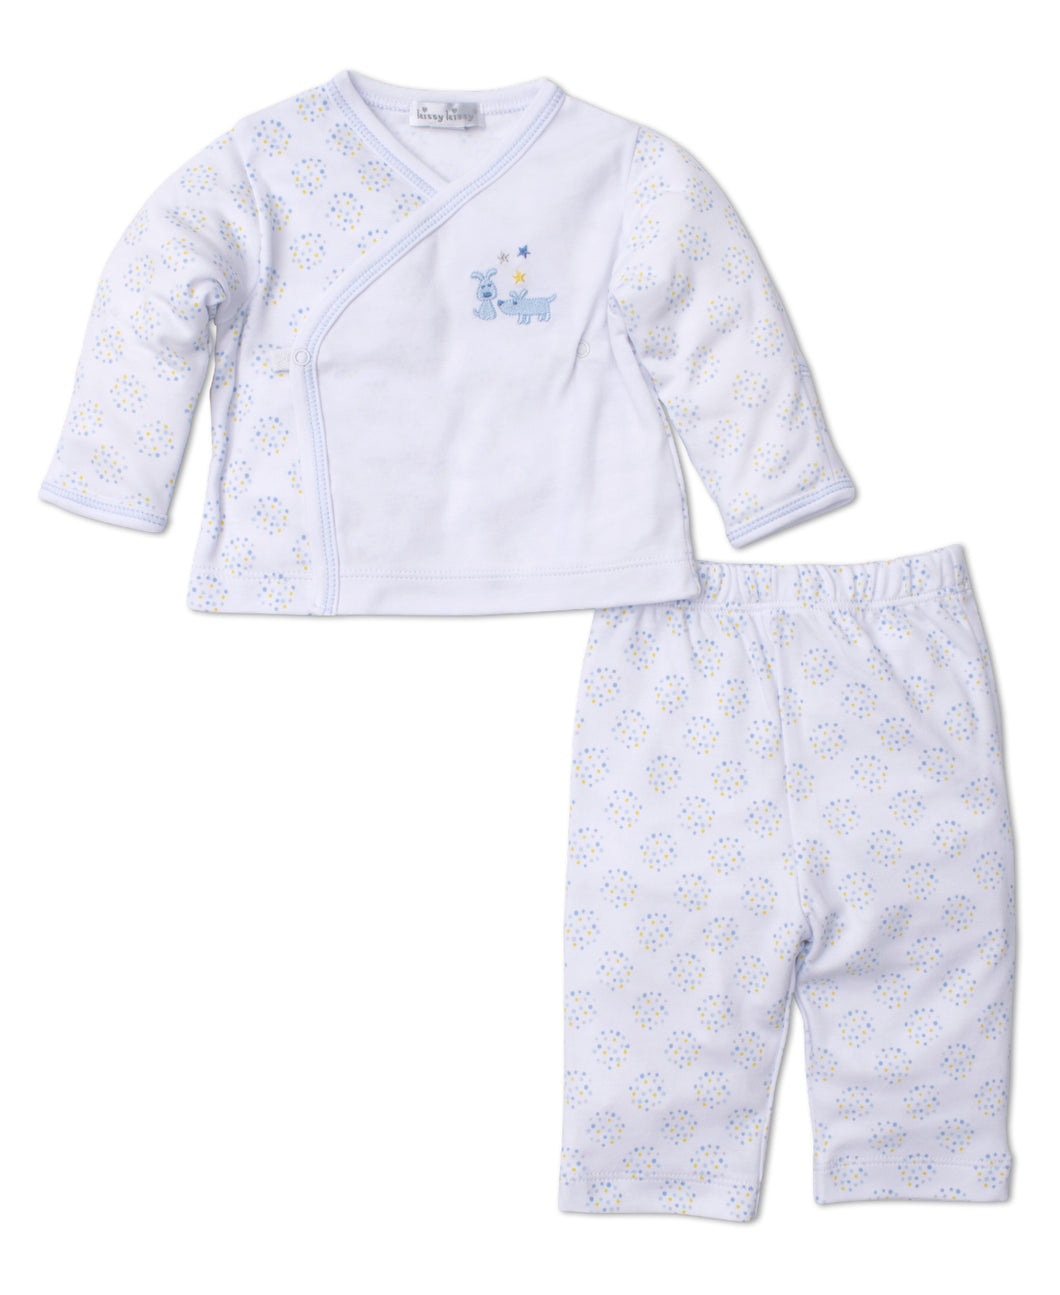 Pups in a Row Pant Set Mix - Light Blue